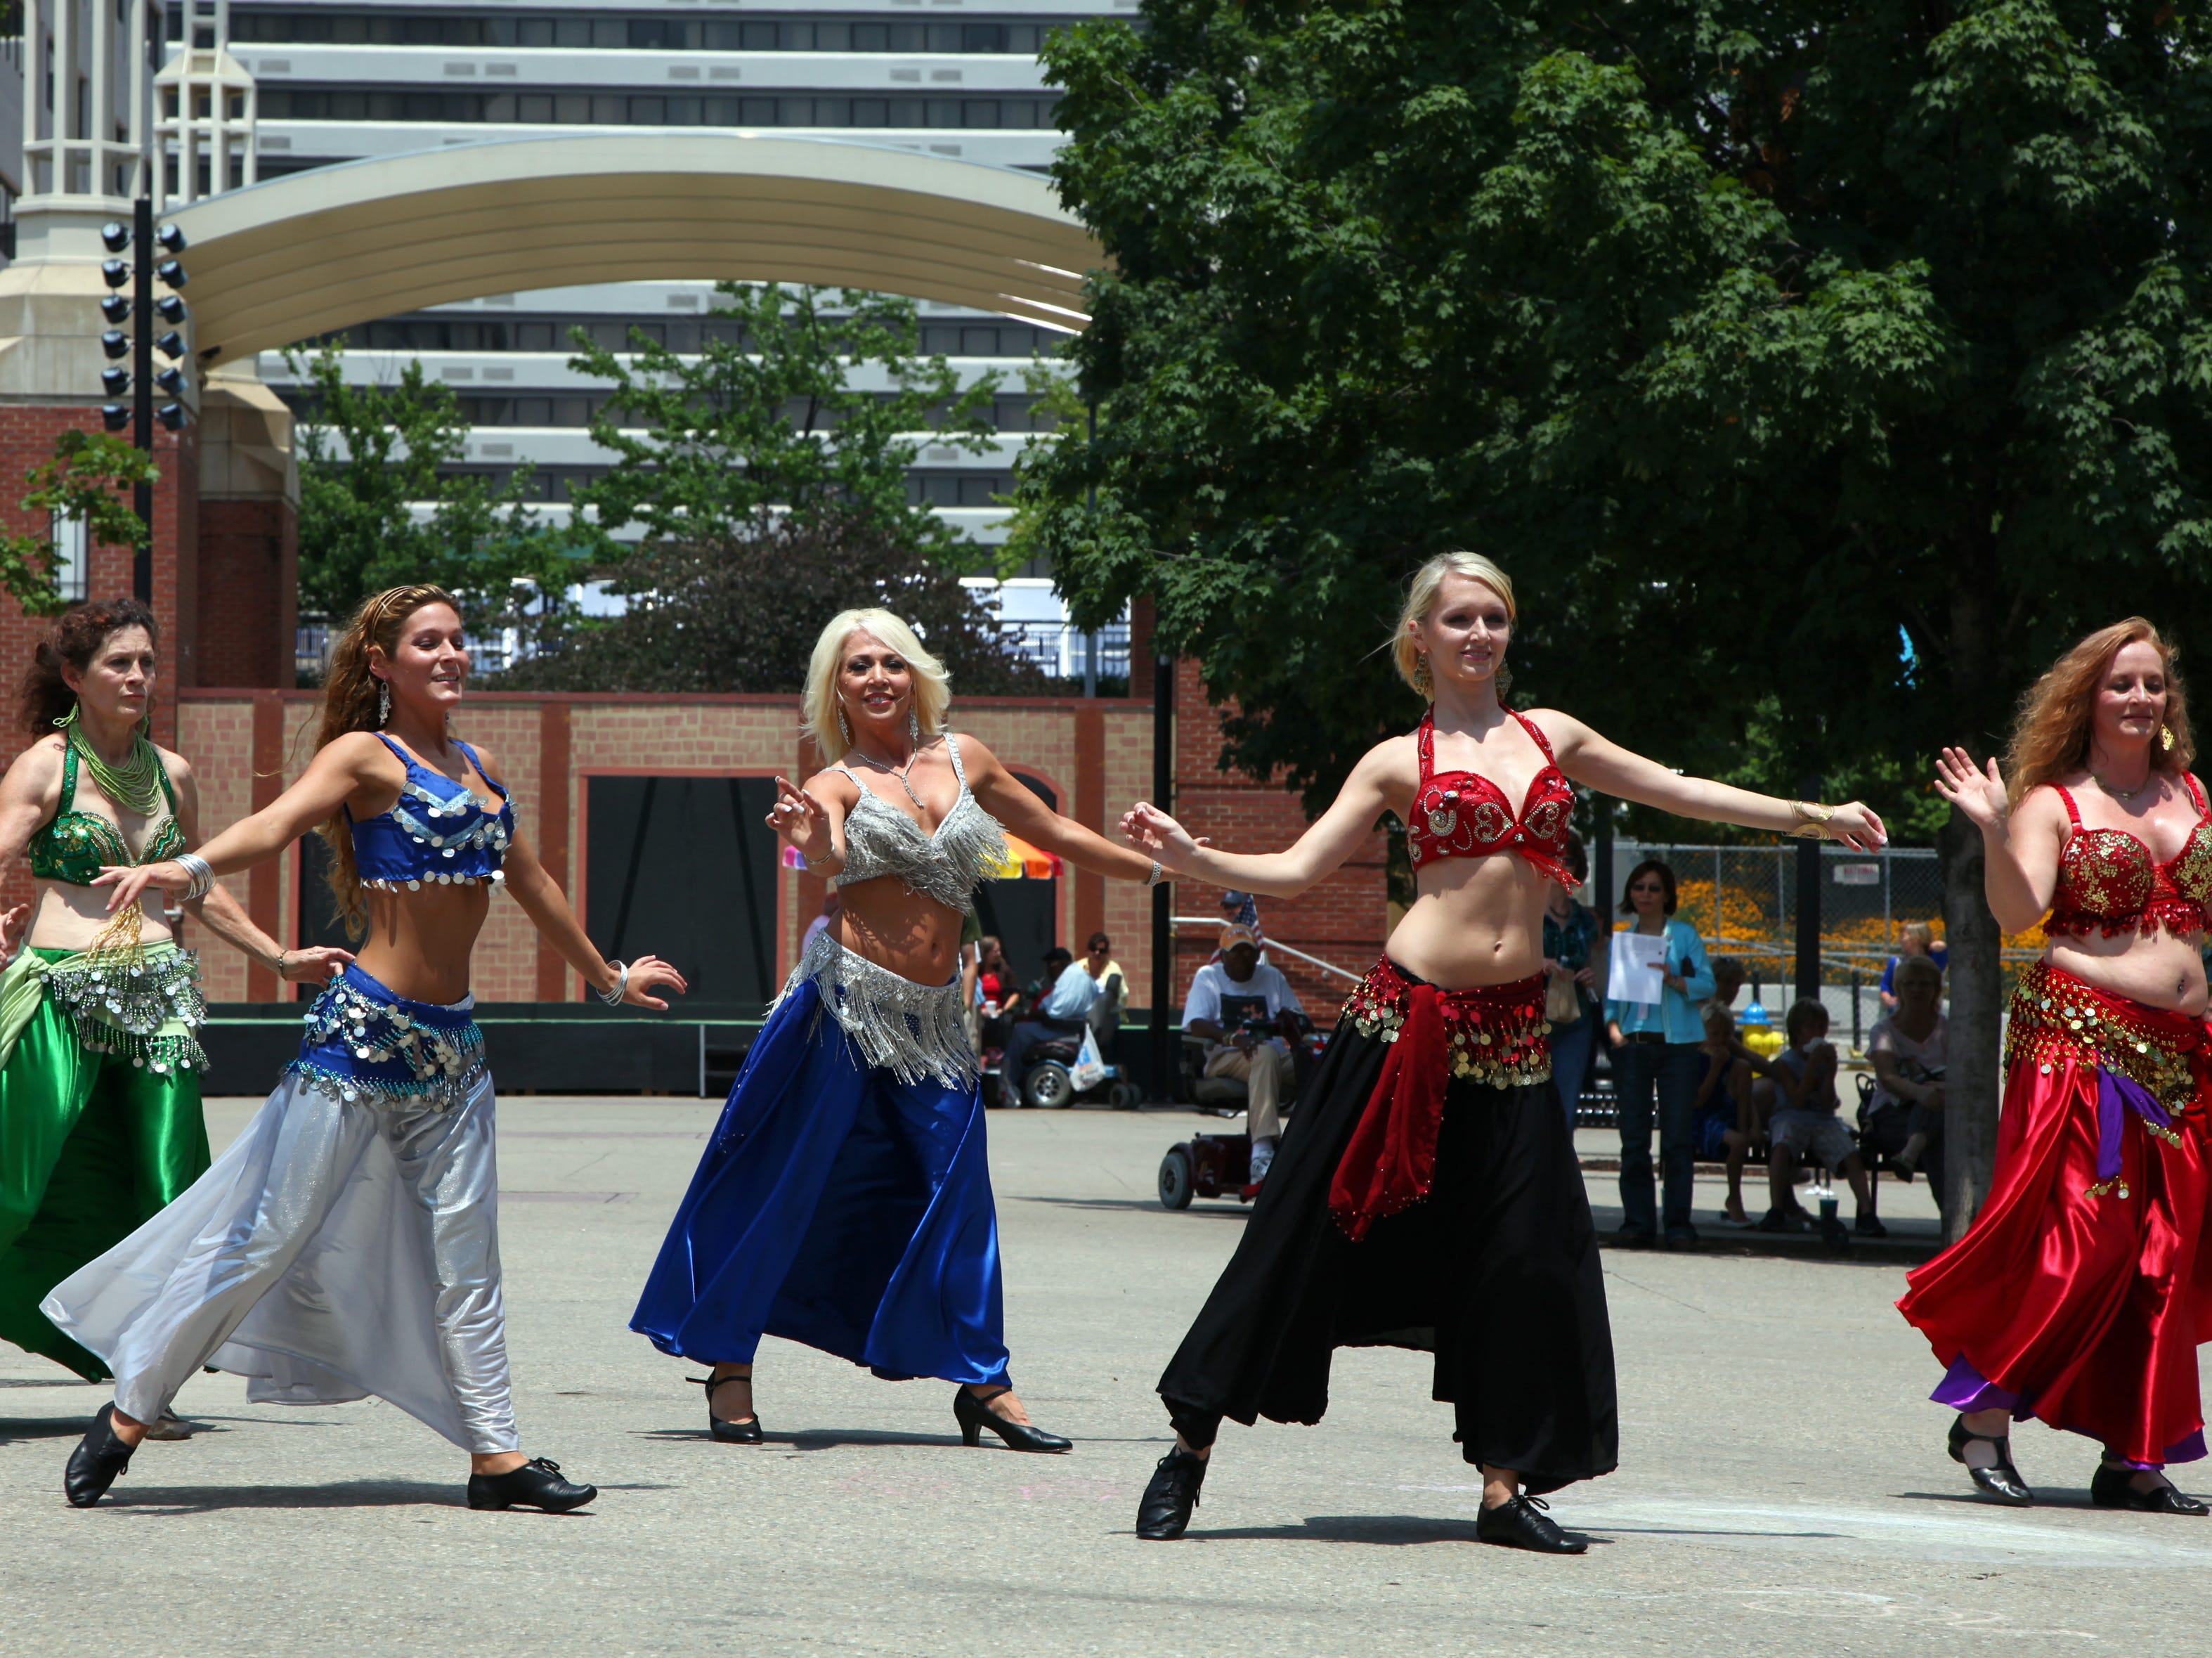 The Sandsation Dancers, from left, Kippy Greene, Mia Brasseaux, instructor Sandy Larson, Cathryn Chipley, and Melody Deakin perform a belly dance routine on Market Square Friday, July 10, 2009.  Larson teaches a belly dance class through the Knoxville Arts and Fine Crafts Center and brought her class out to perform during the lunch hour.